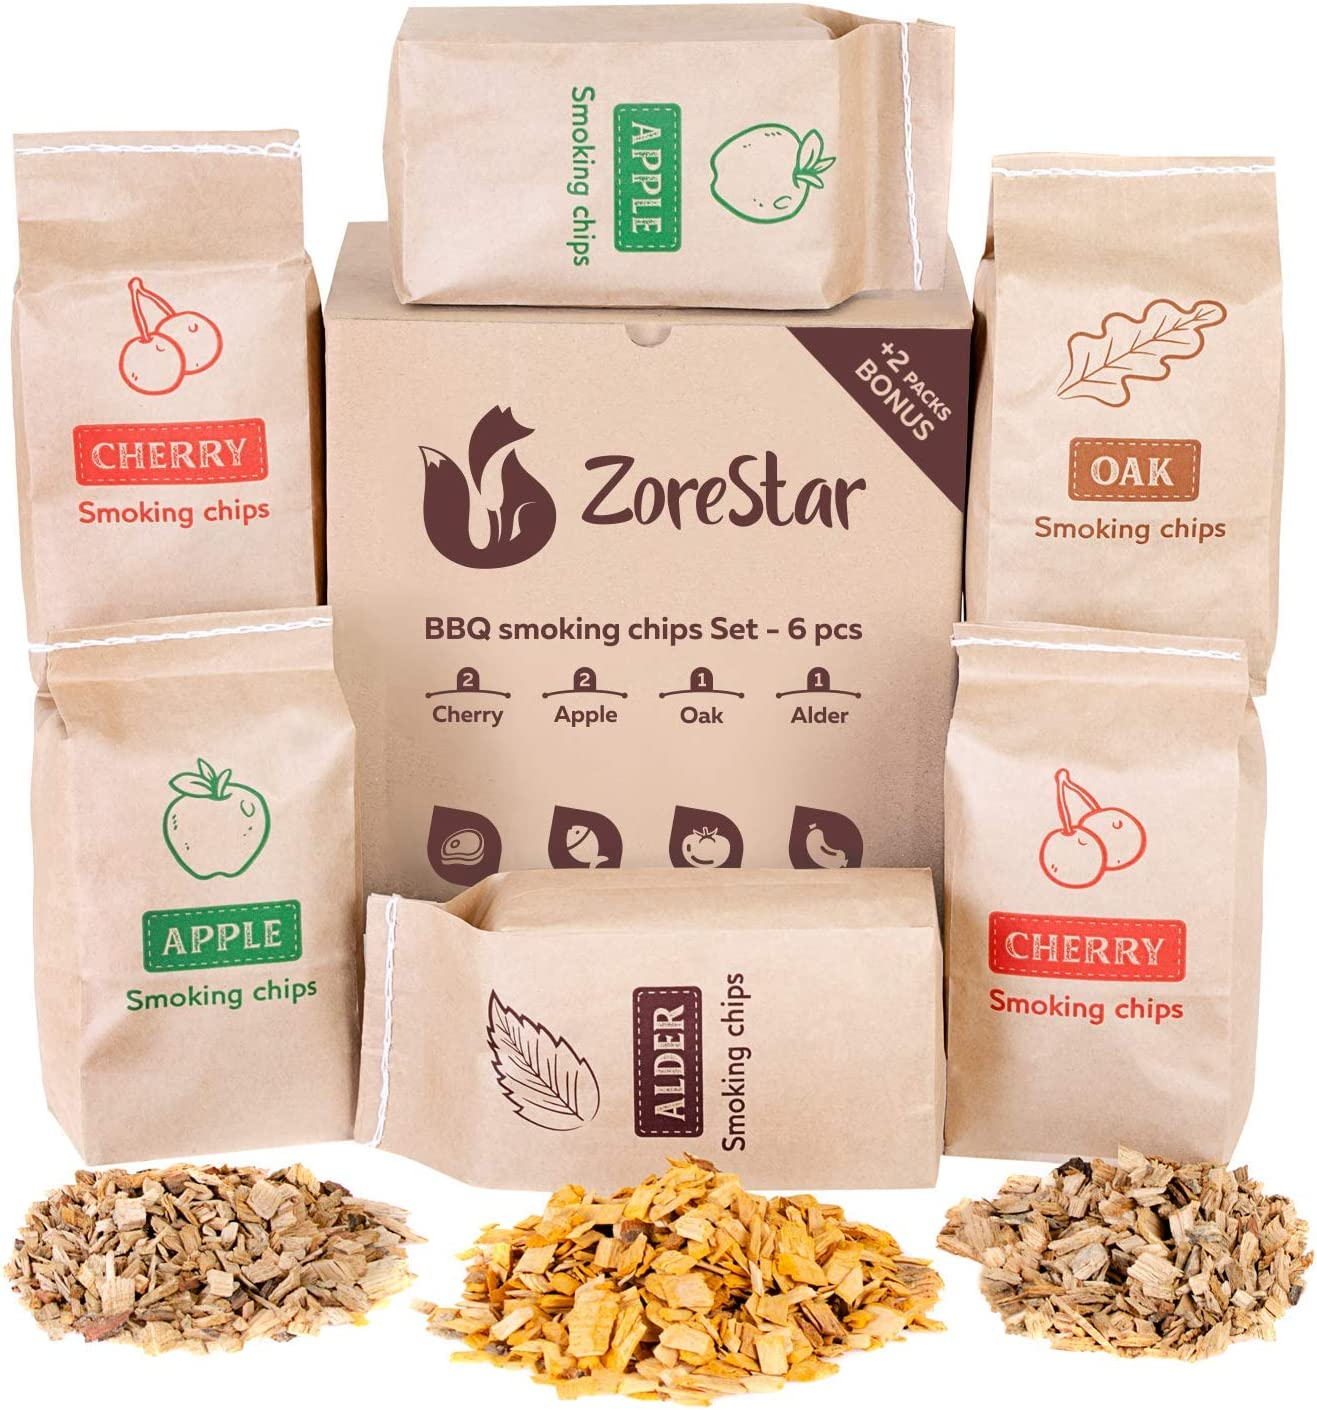 Zorestar Wood Chips for Smokers - 6 Tampa Mall Pack High order Al Oak Variety pcs of